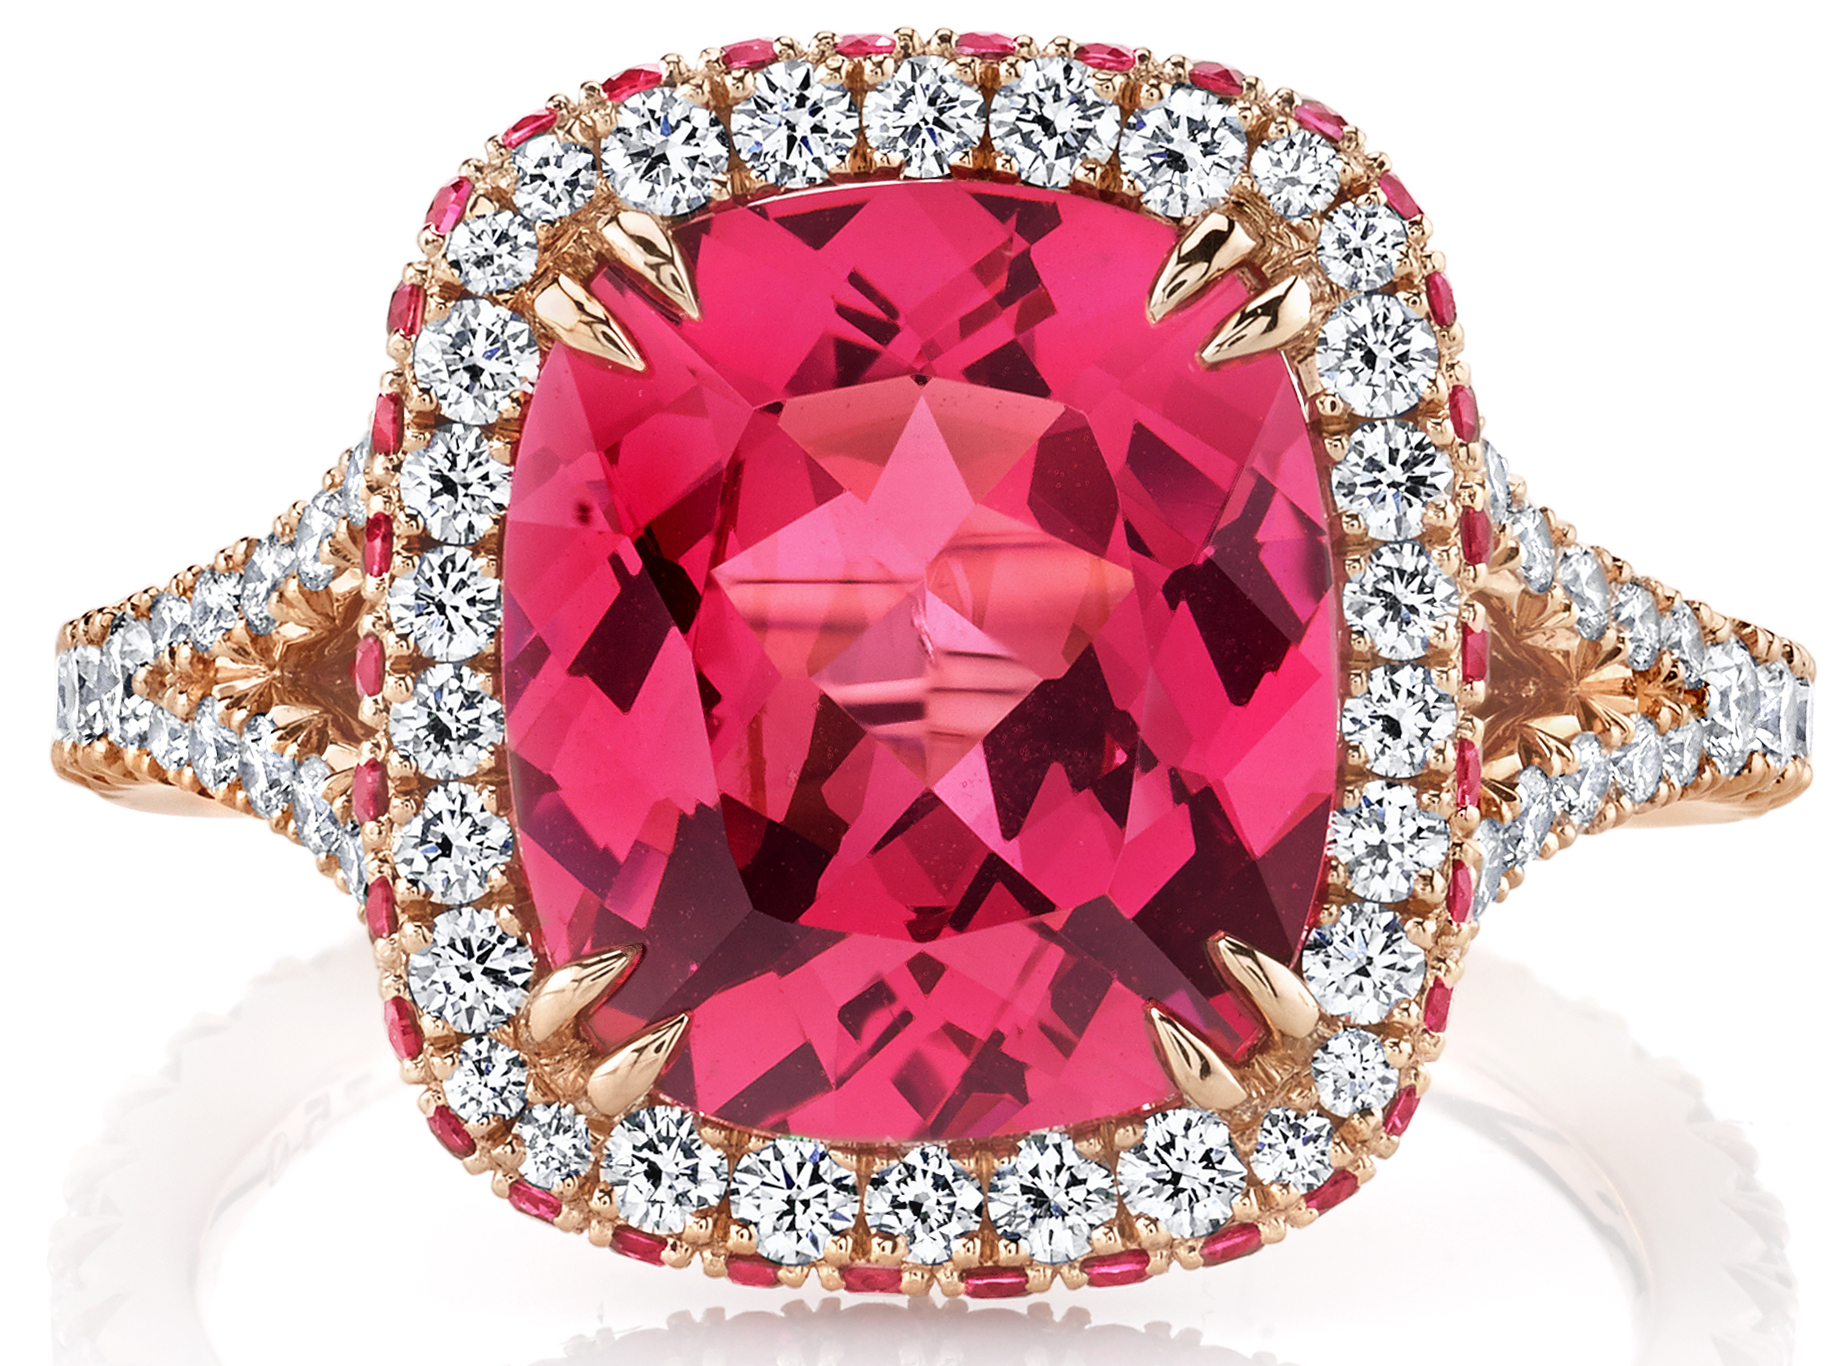 Omi Privé pink spinel Duet ring | JCK On Your Market